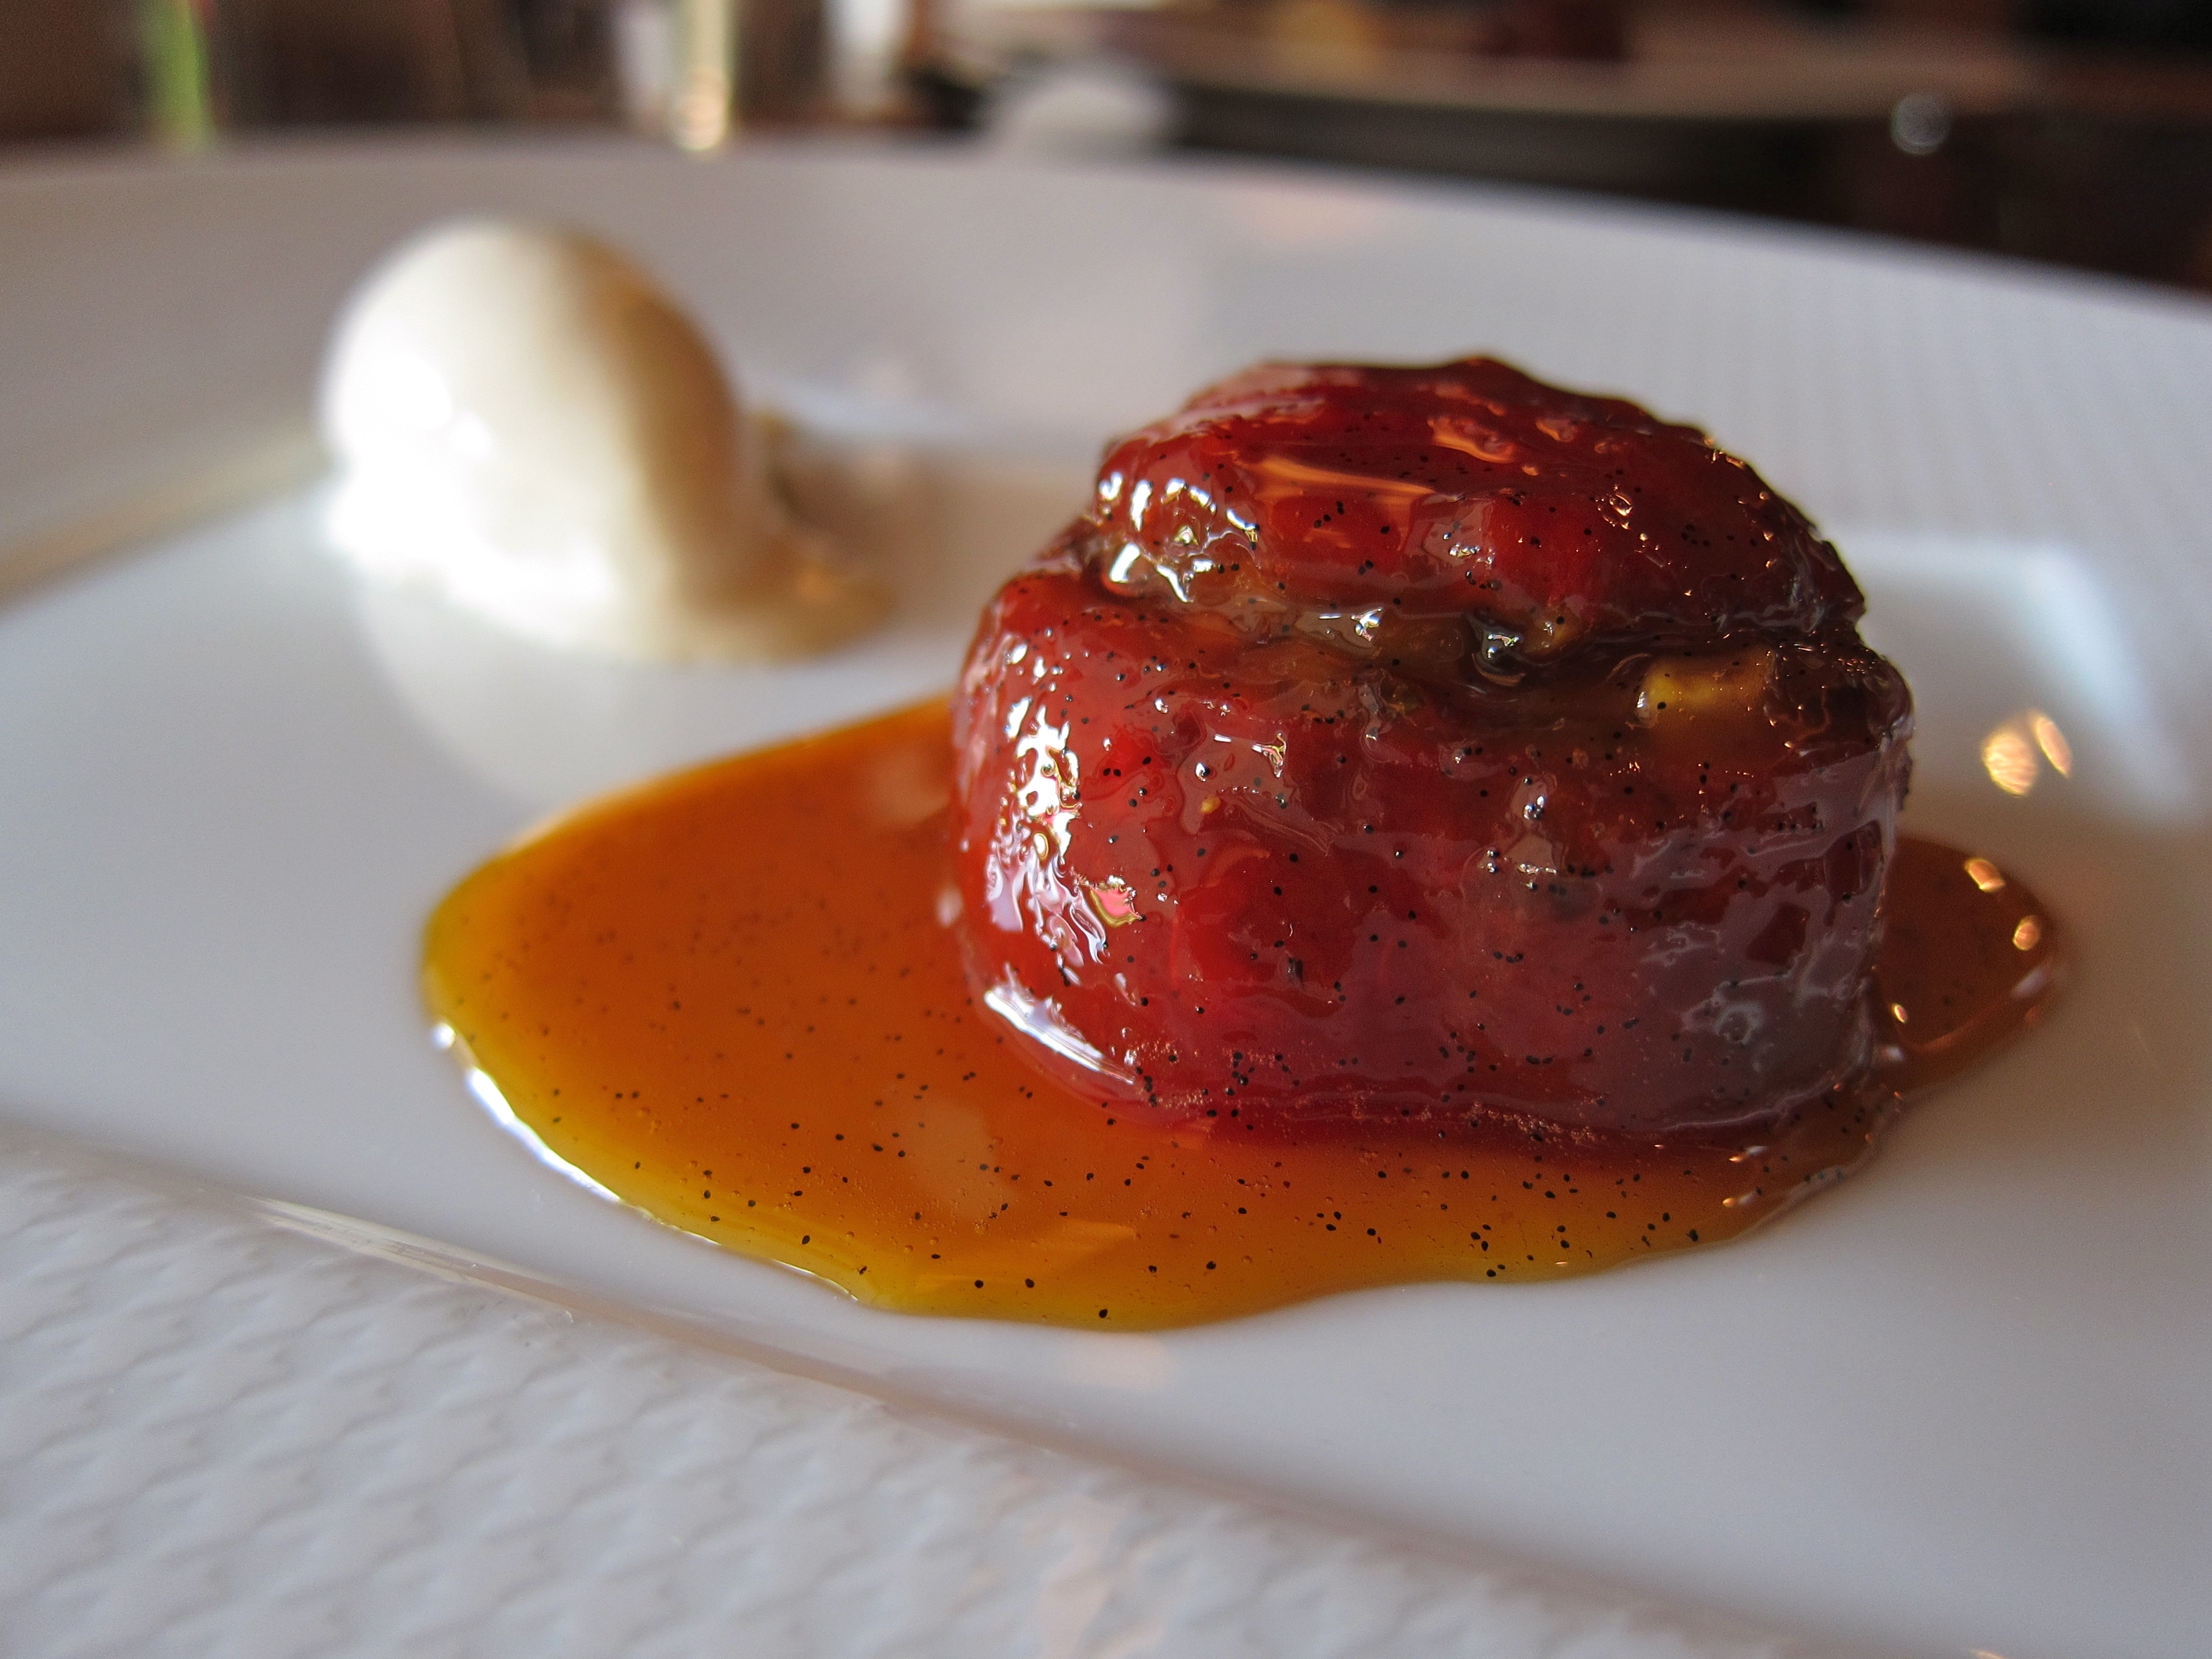 were one thing that wasn't right, it was the gorgeous candied tomato ...